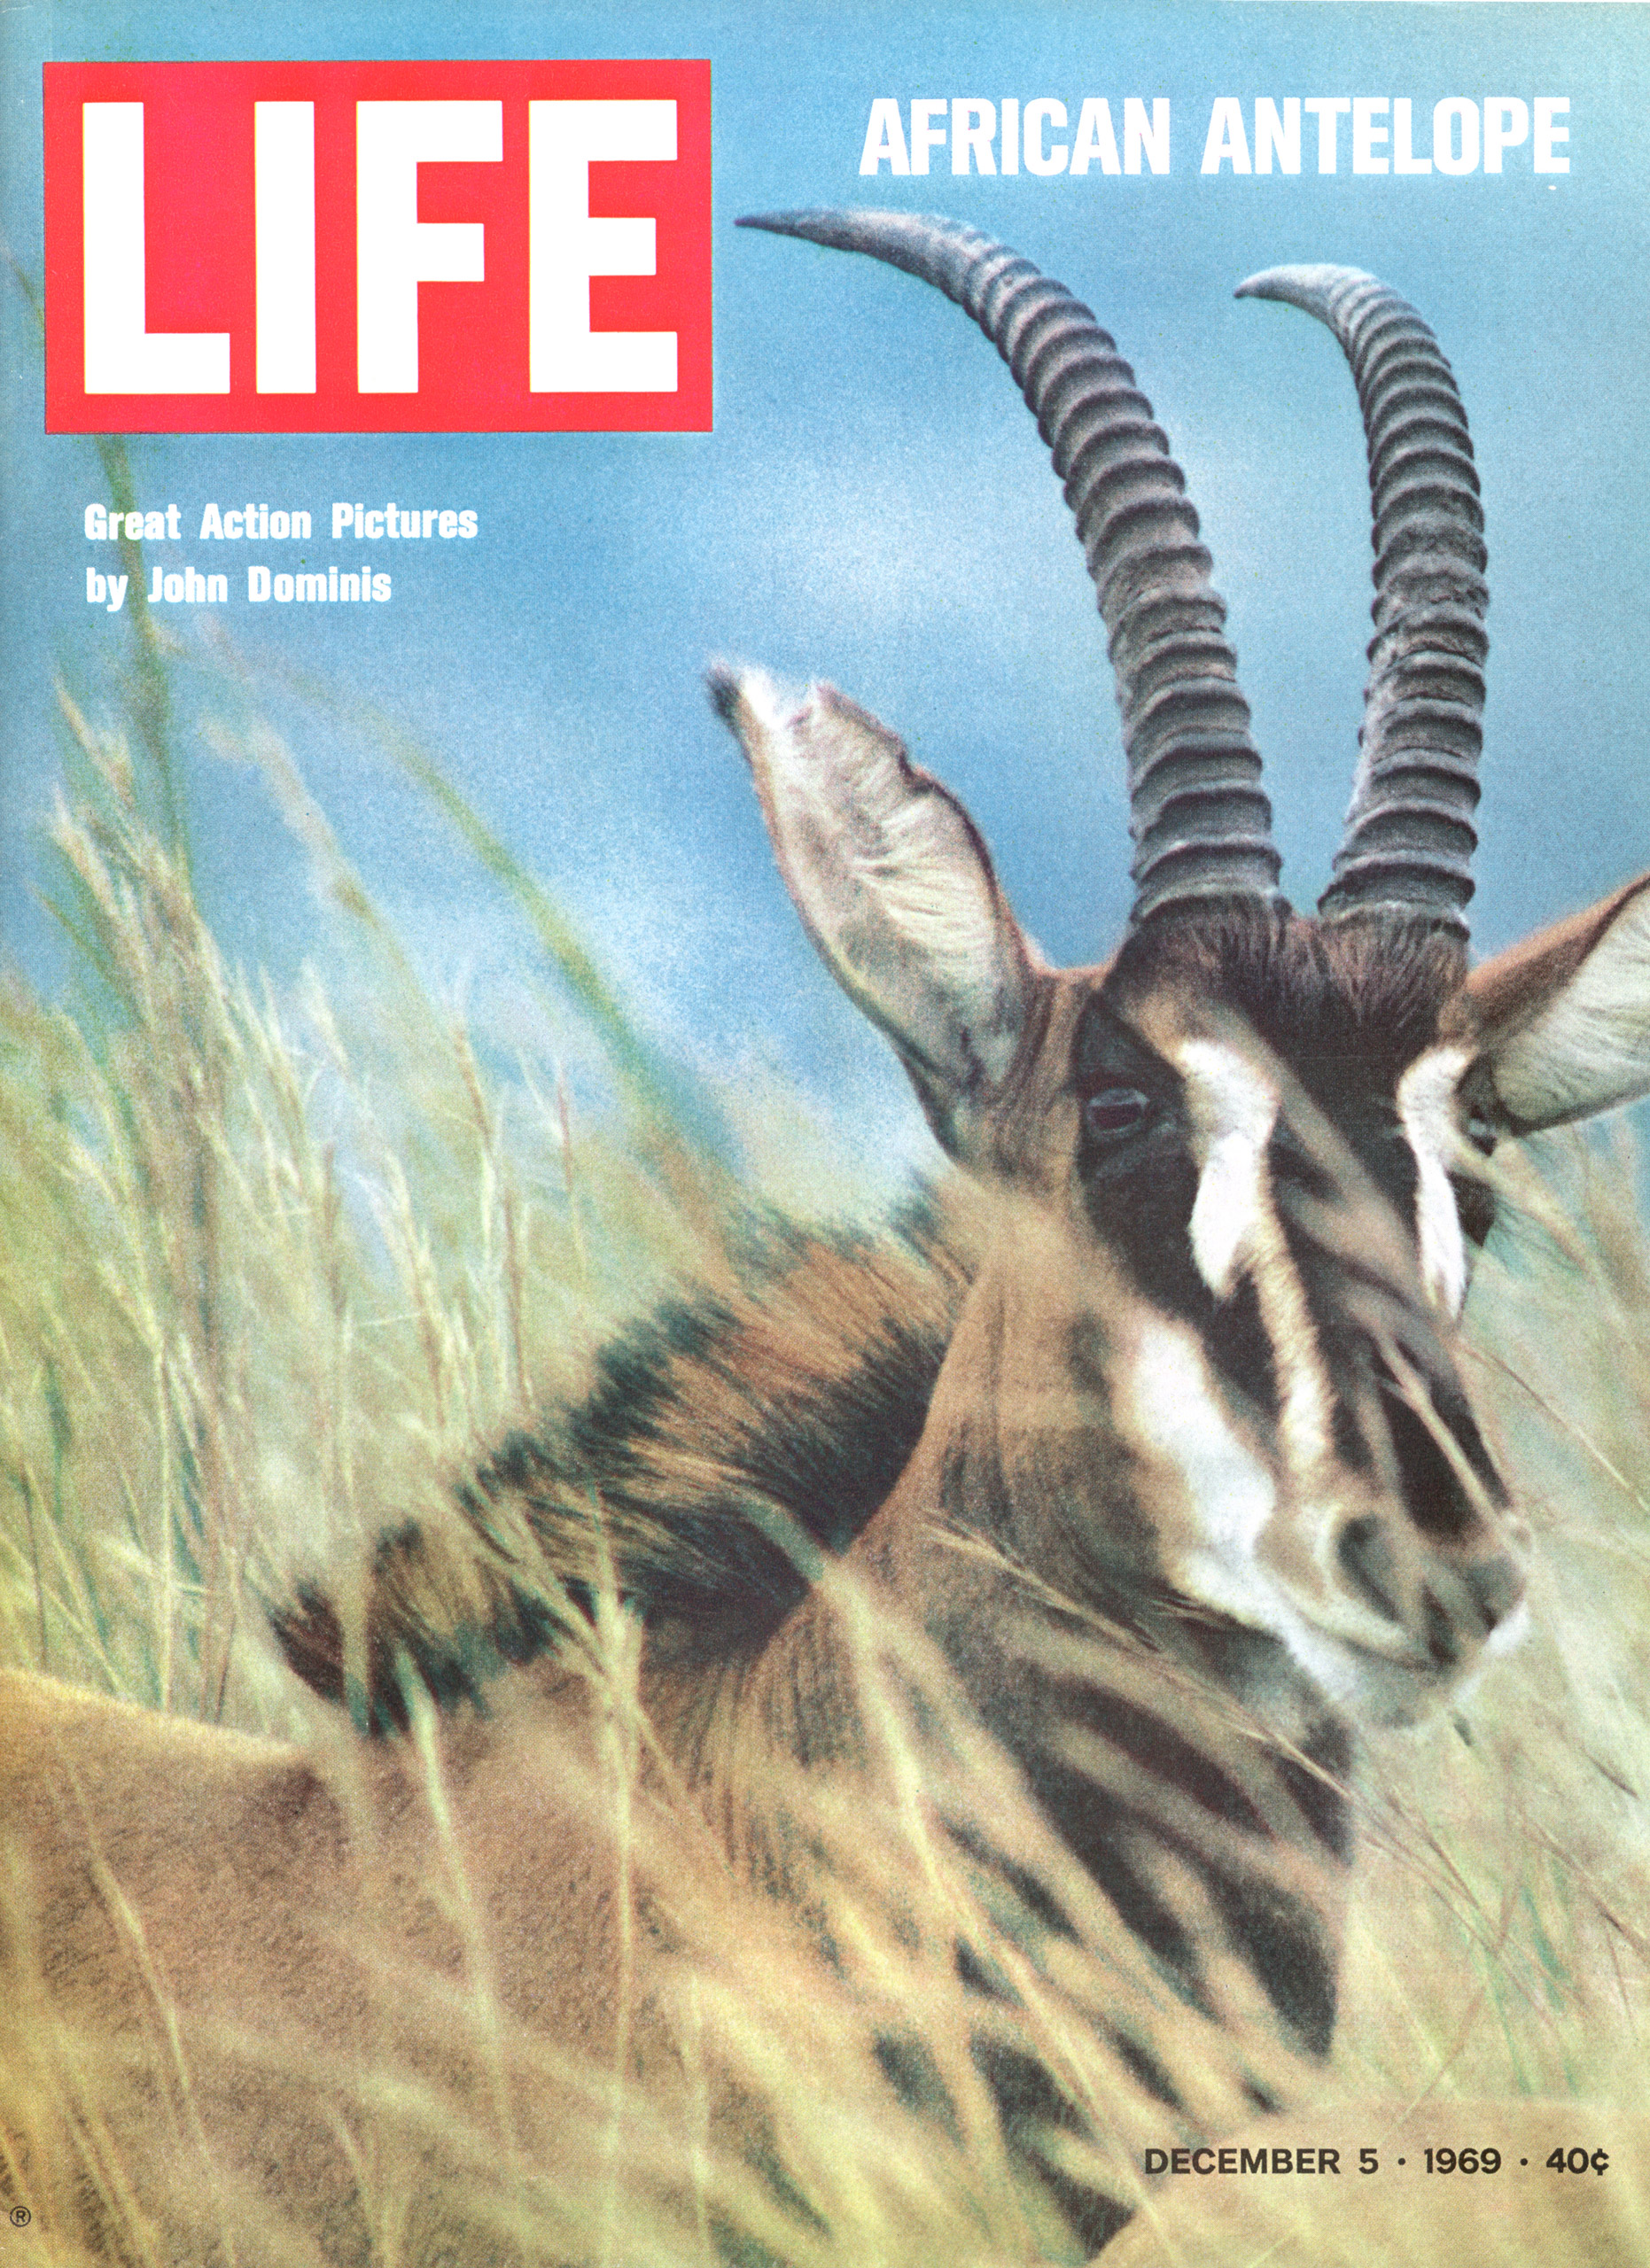 December 5, 1969 LIFE Magazine cover (photo by John Dominis).